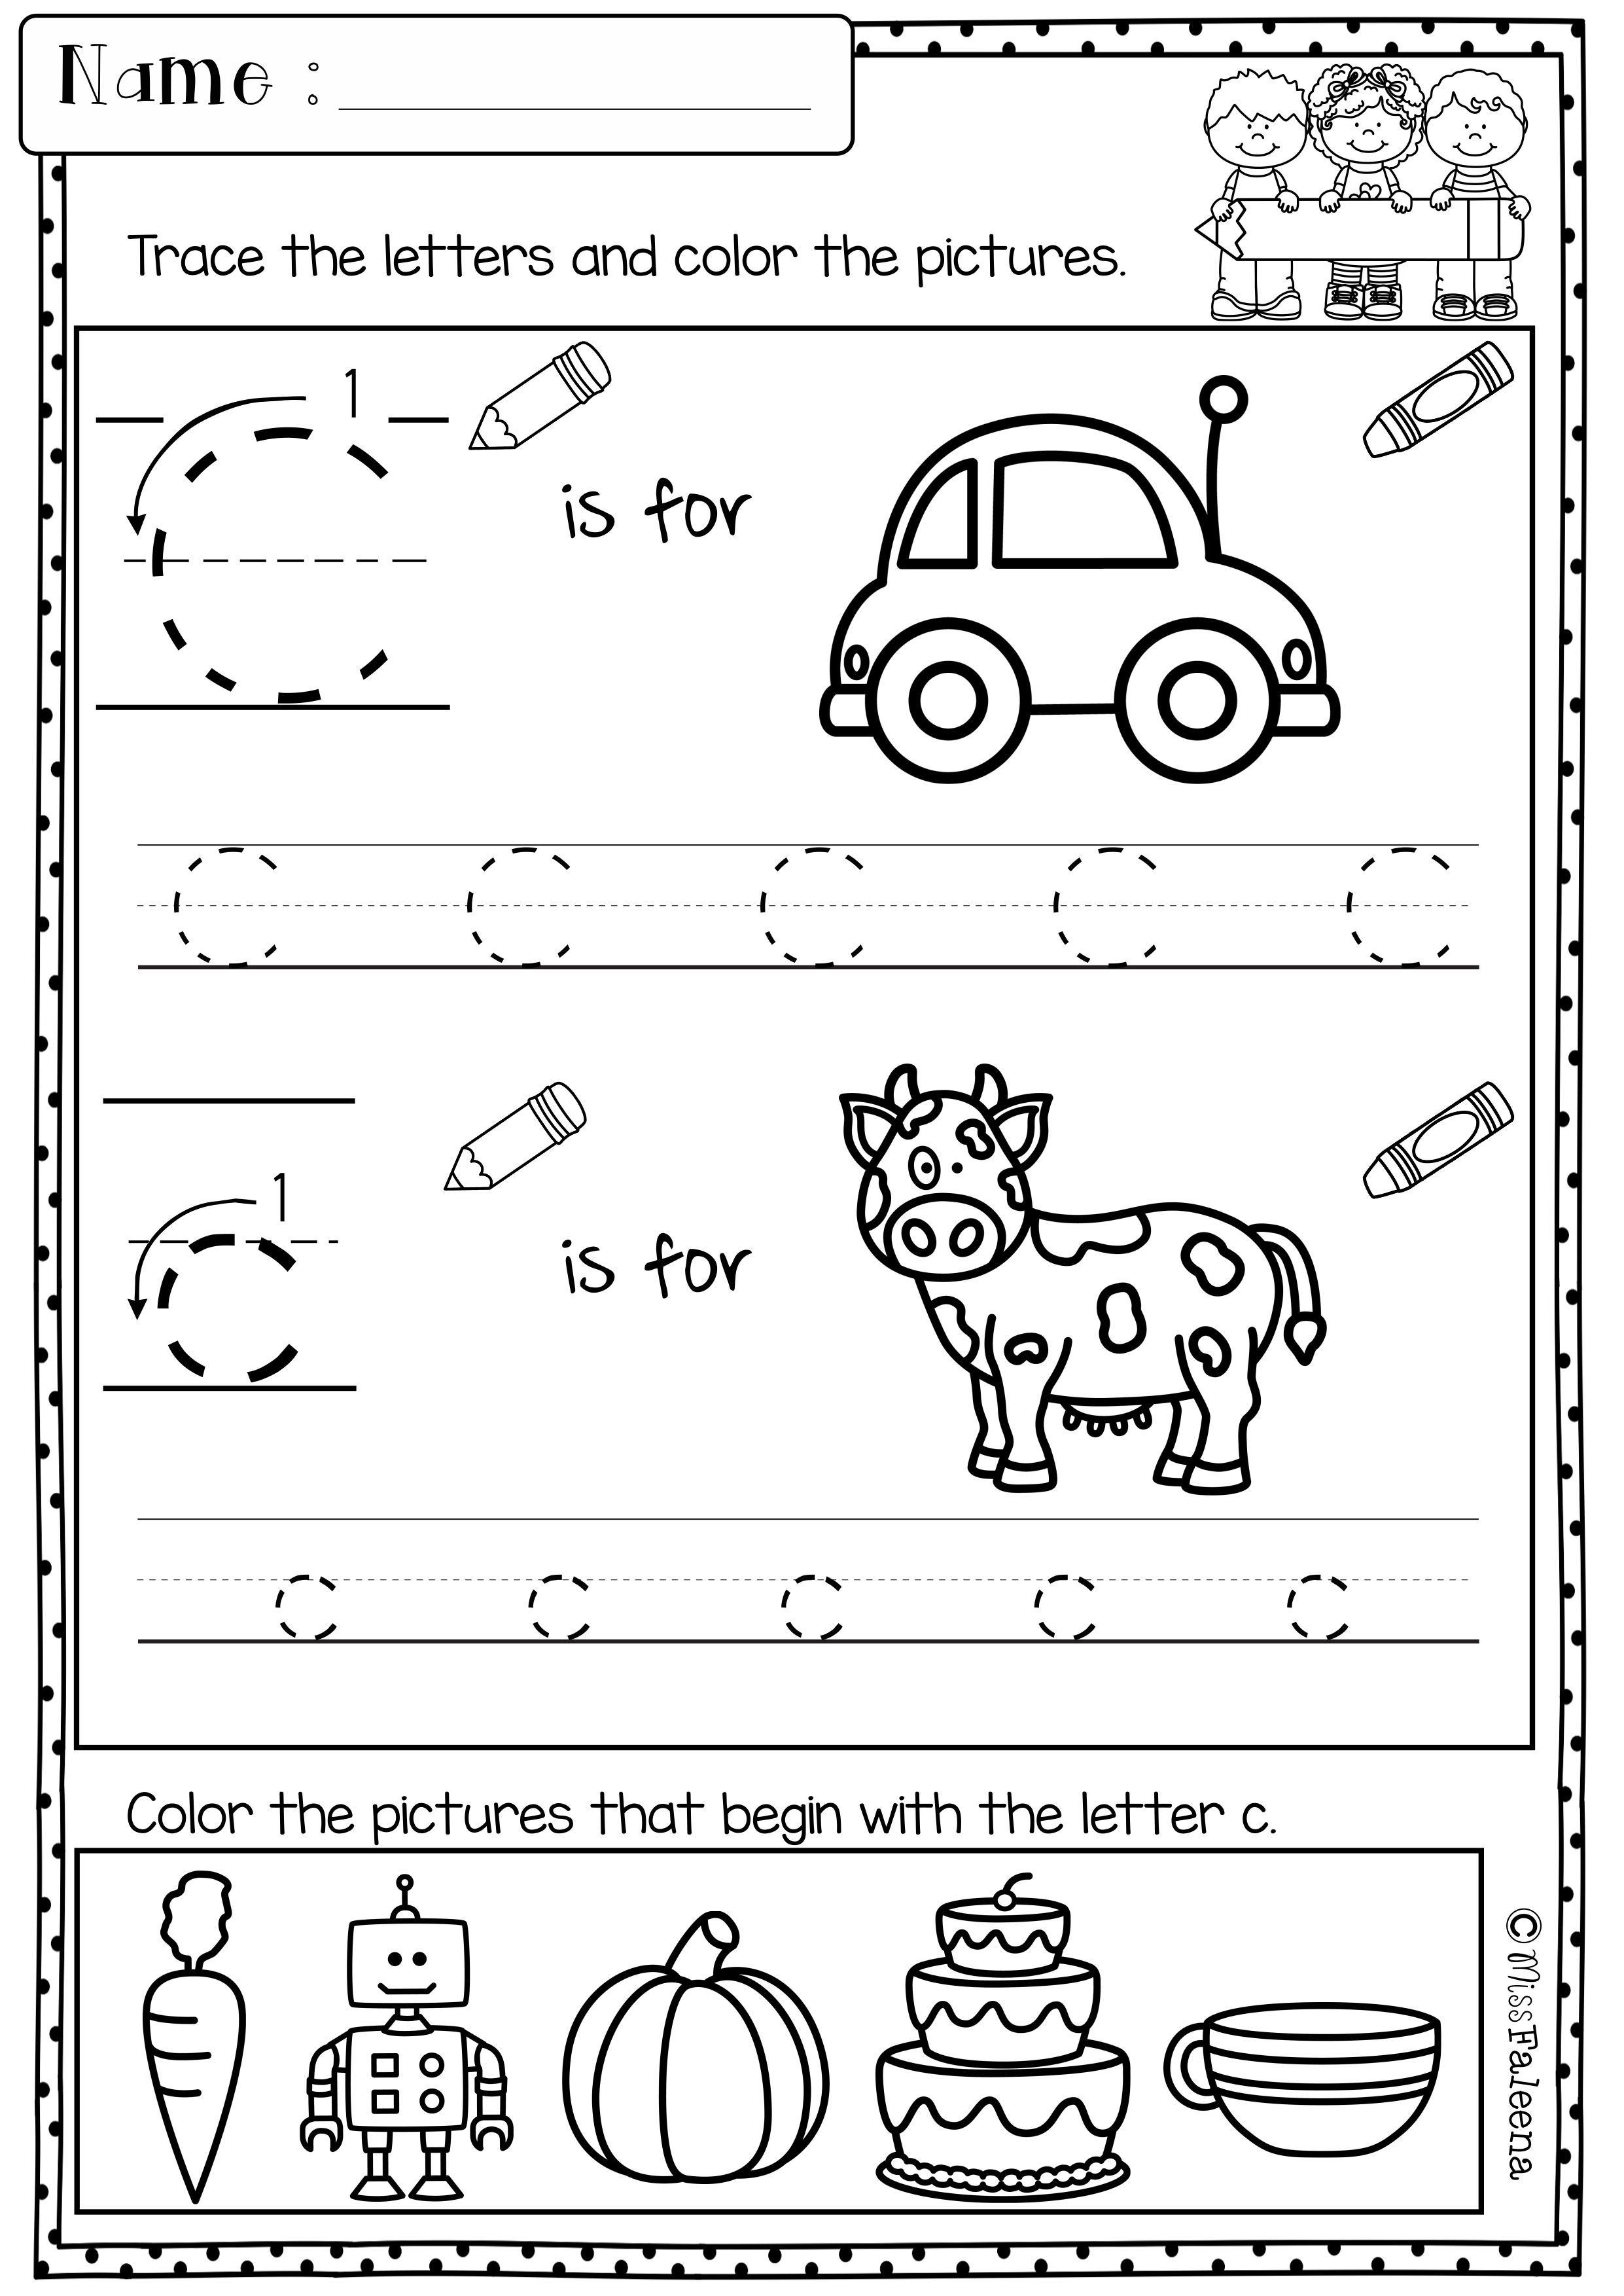 Free Kindergarten Morning Work Includes 18 Worksheet Pages These Pages Are Great For Preschool